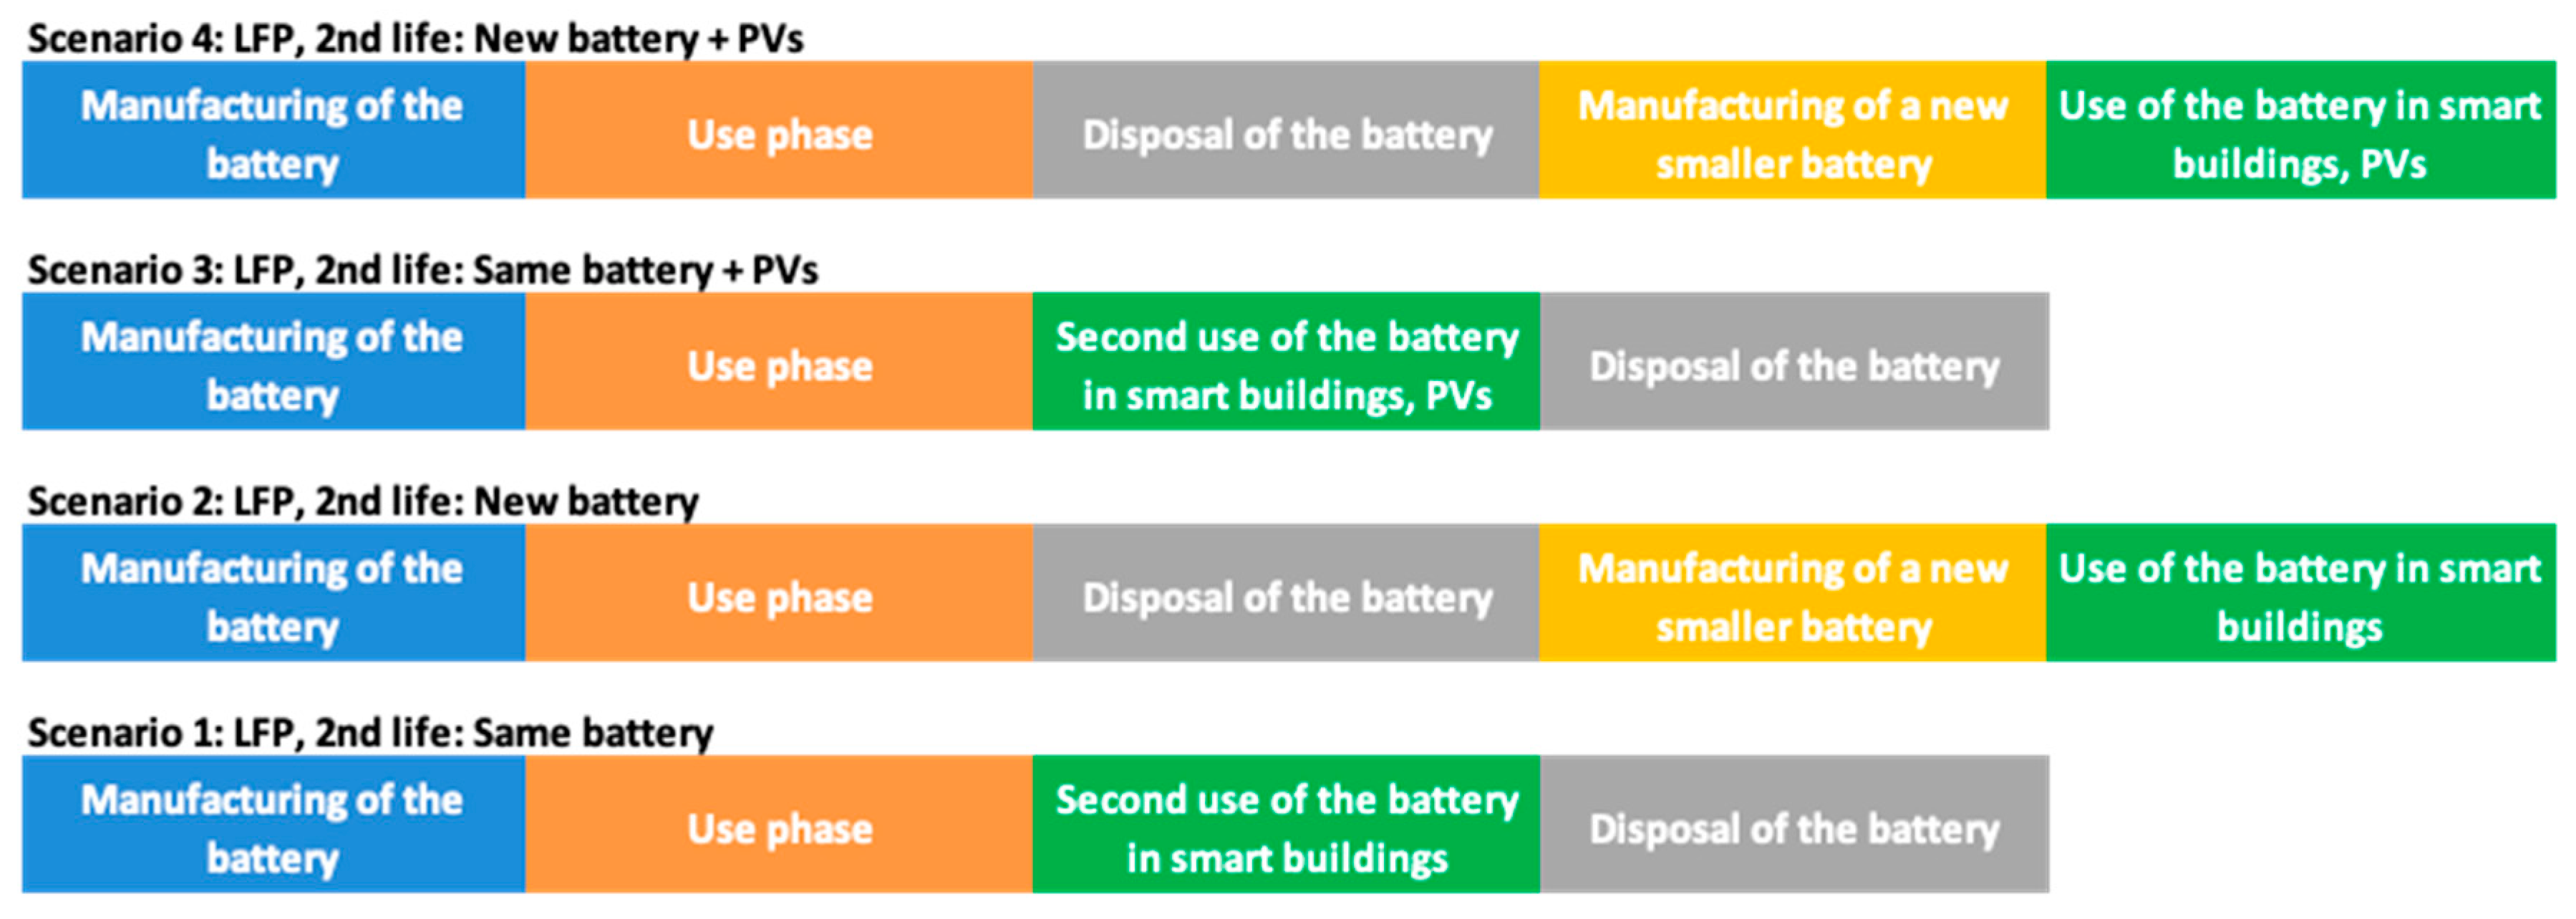 The image illustrates the EV battery lifecycle.